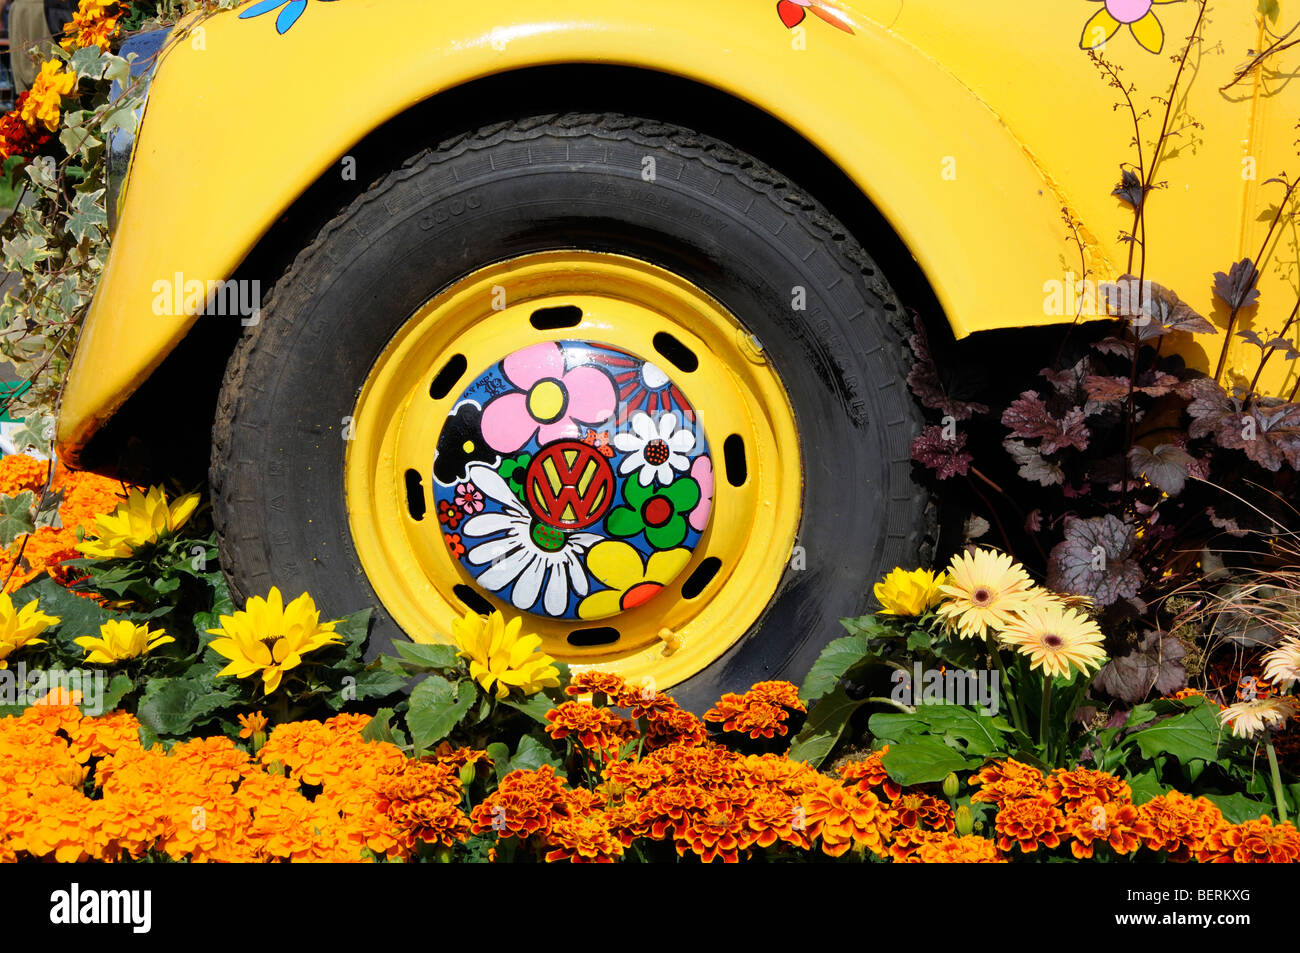 Wheel of the VW beetle 'Perennial Petal Power' at Gardening Scotland 2009, Ingliston, Edinburgh, Scotland, - Stock Image